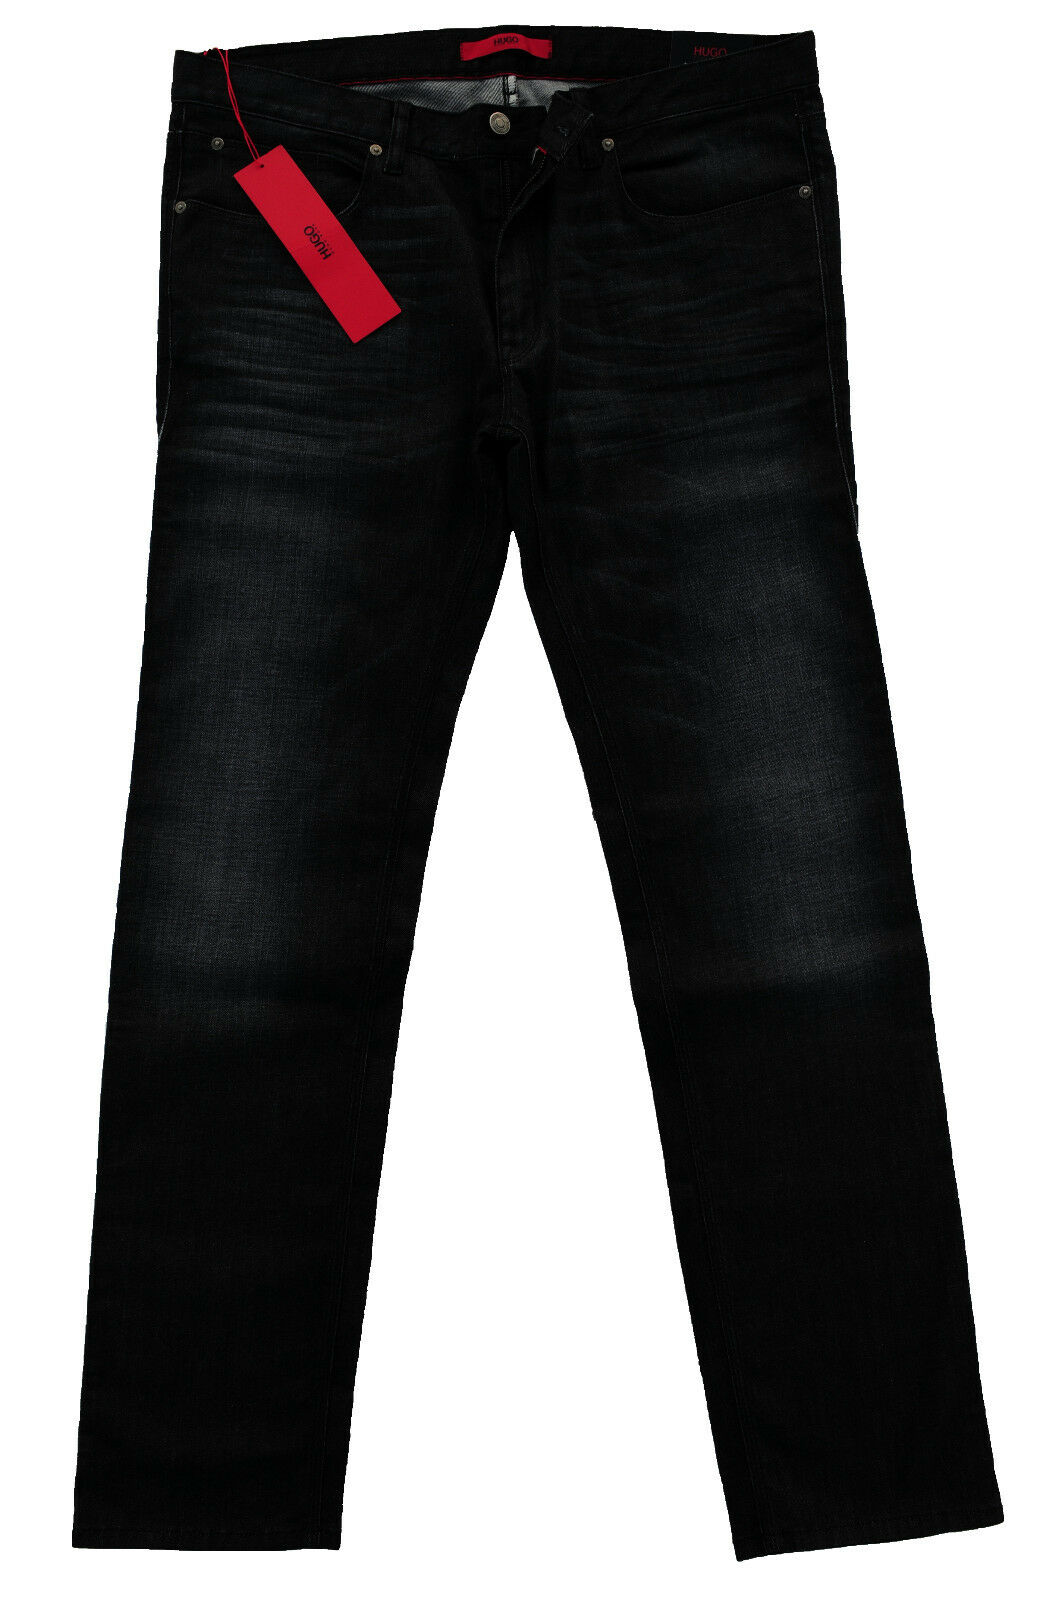 NW36 L34 HUGO BOSS JEANS HOSE HUGO 708 SLIM FIT 36 34 50276576